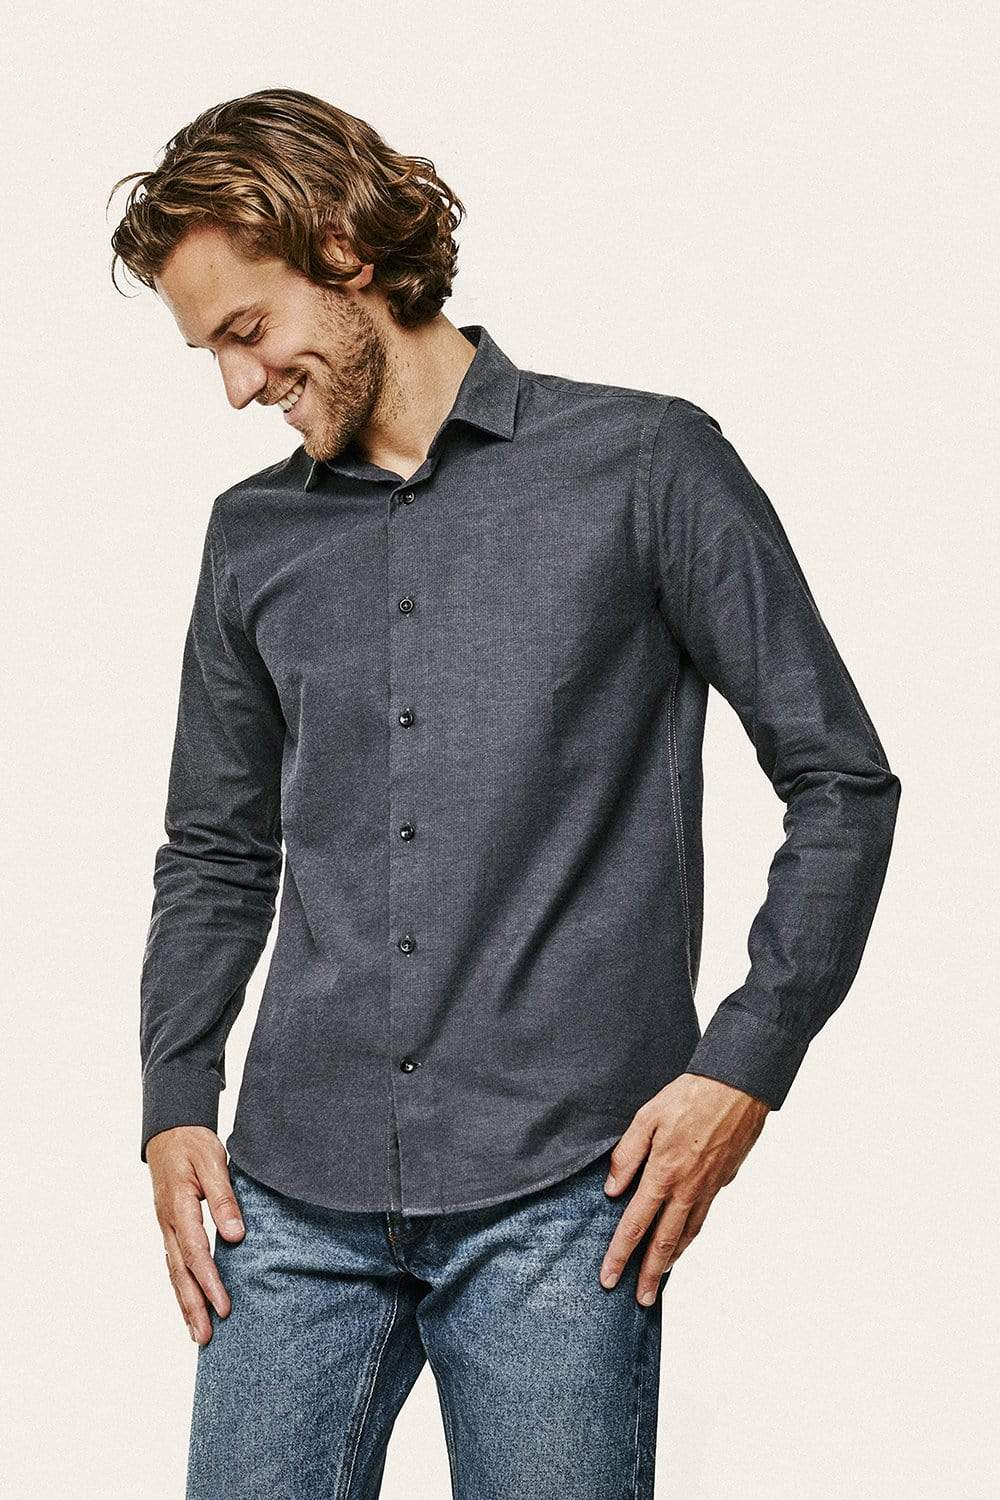 Tober Shirt - Anthracite